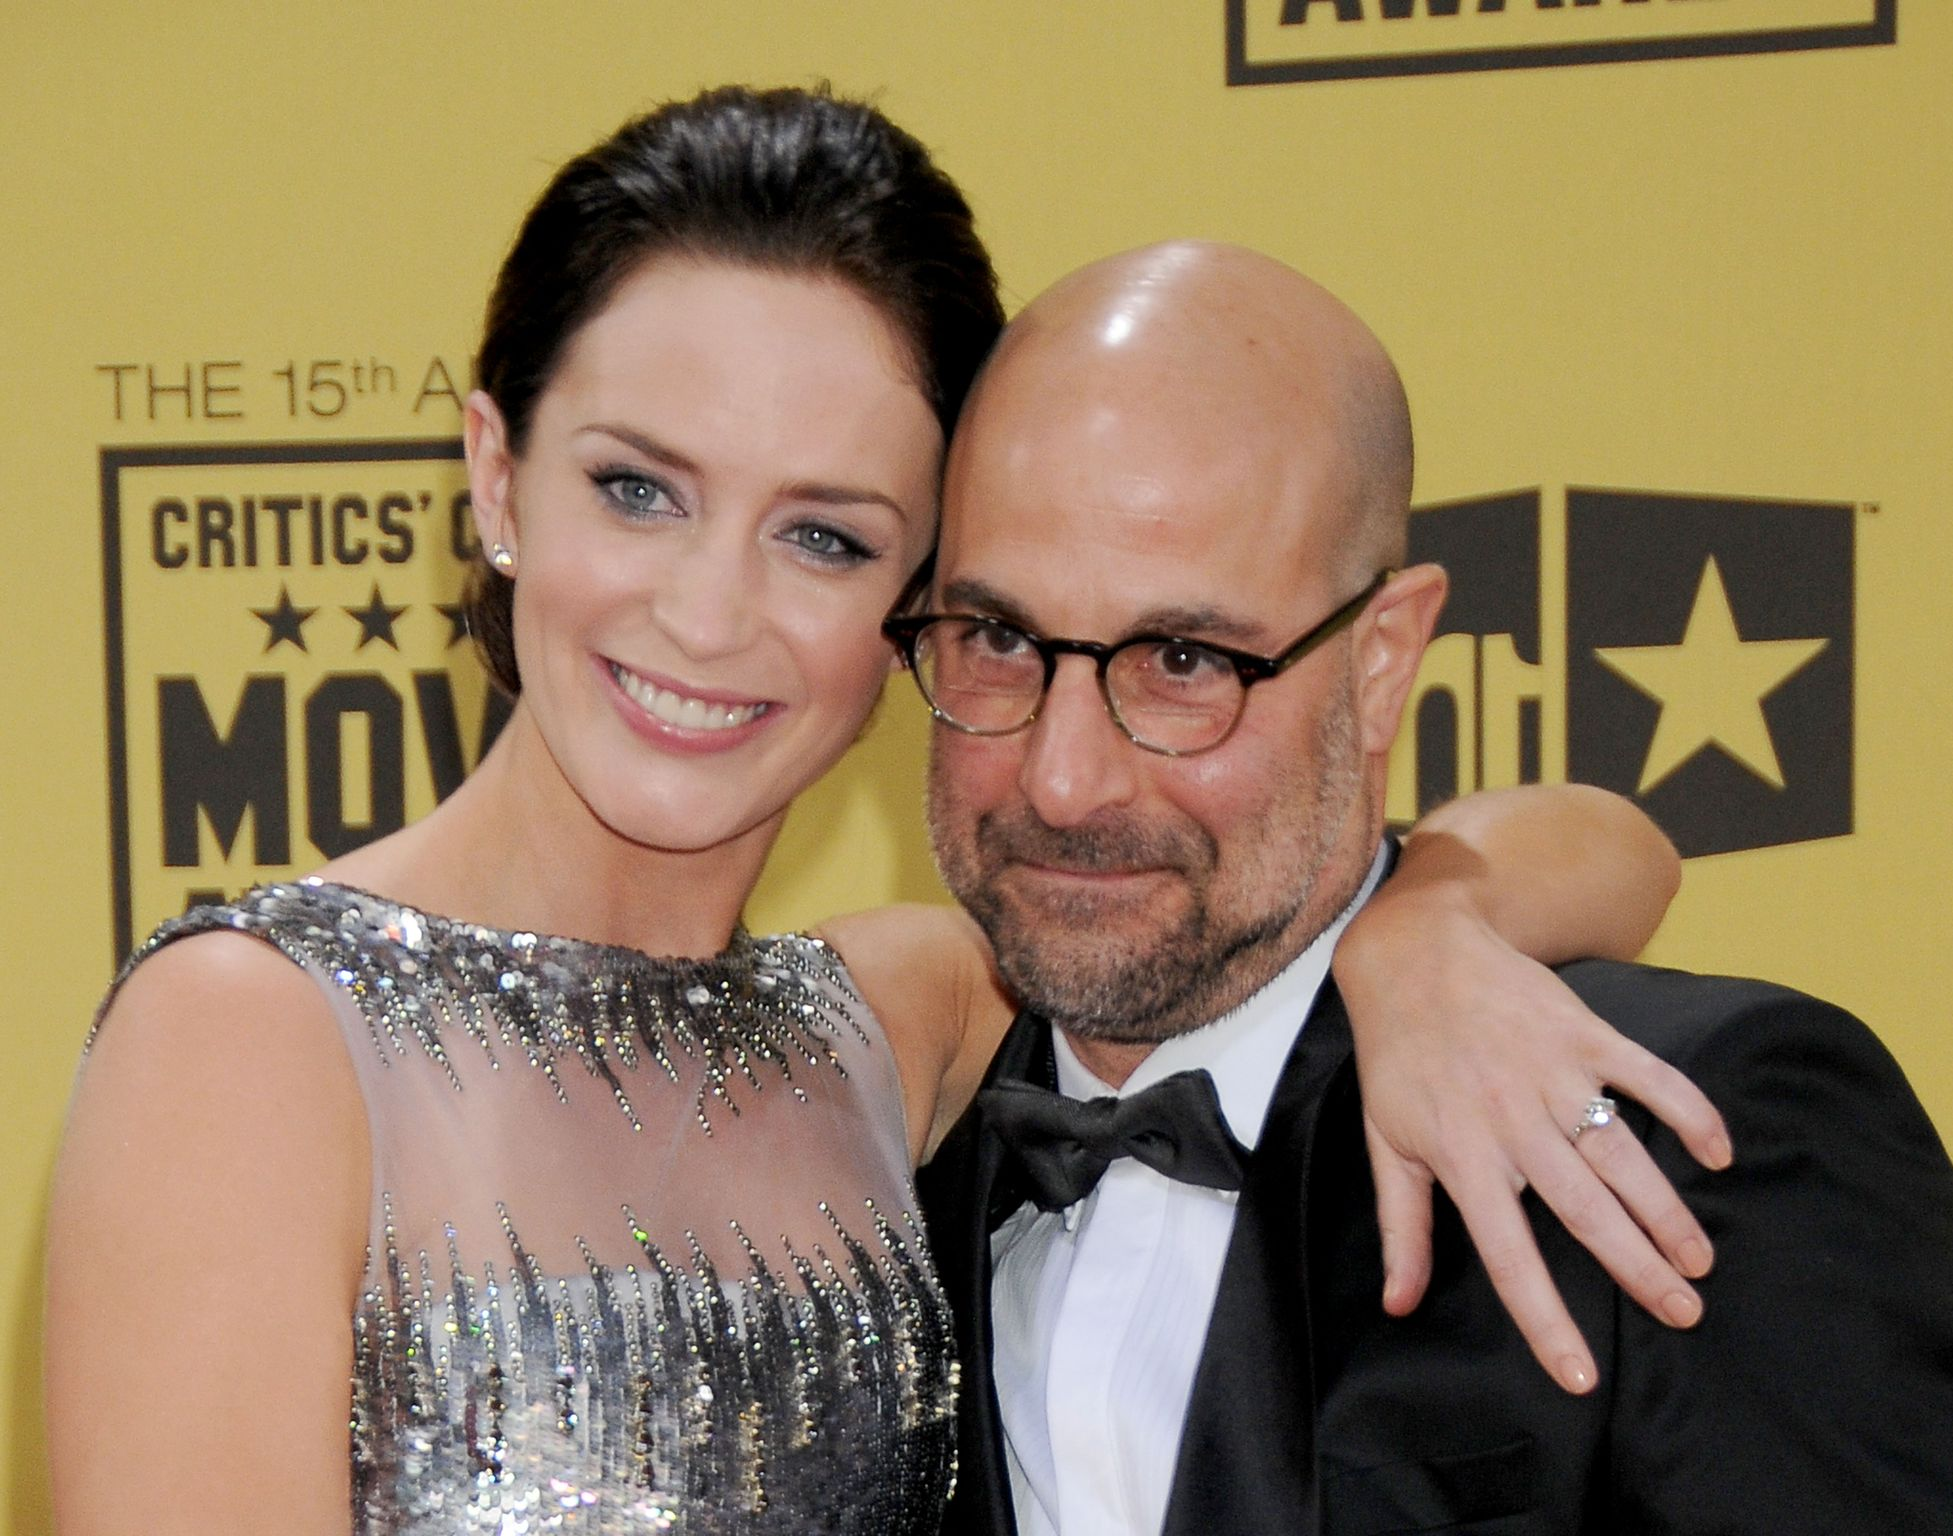 Emily Blunt and Stanley Tucci at the 15th Annual Critics' Choice Movie Awards in 2010 in Hollywood, California | Source: Getty Images